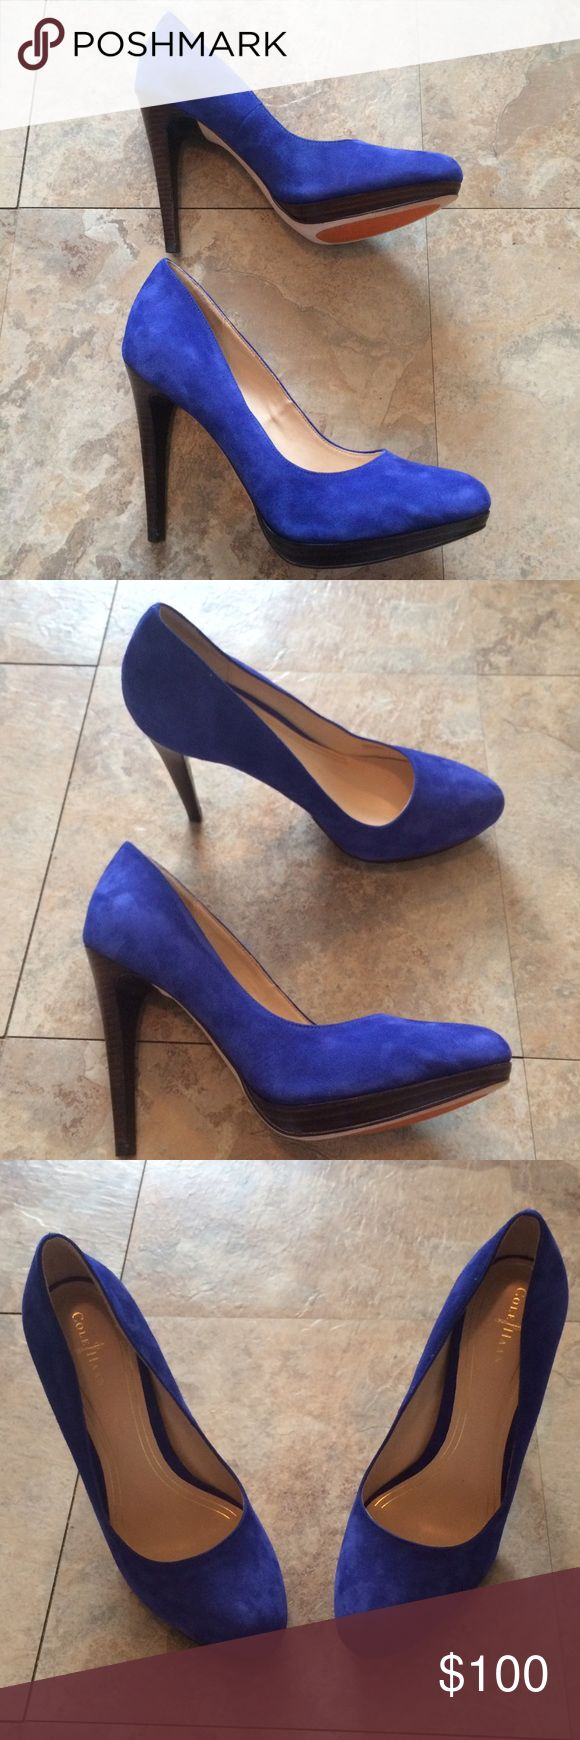 Cole Haan Nike Air Blue Suede Pumps Cole Haan blue suede pumps with Nike Air technology that cushions foot. Wood heel and platform, 3.75 inches with platform. Very comfortable, especially considering the height. Never worn and no signs of wear. Cole Haan Shoes Heels